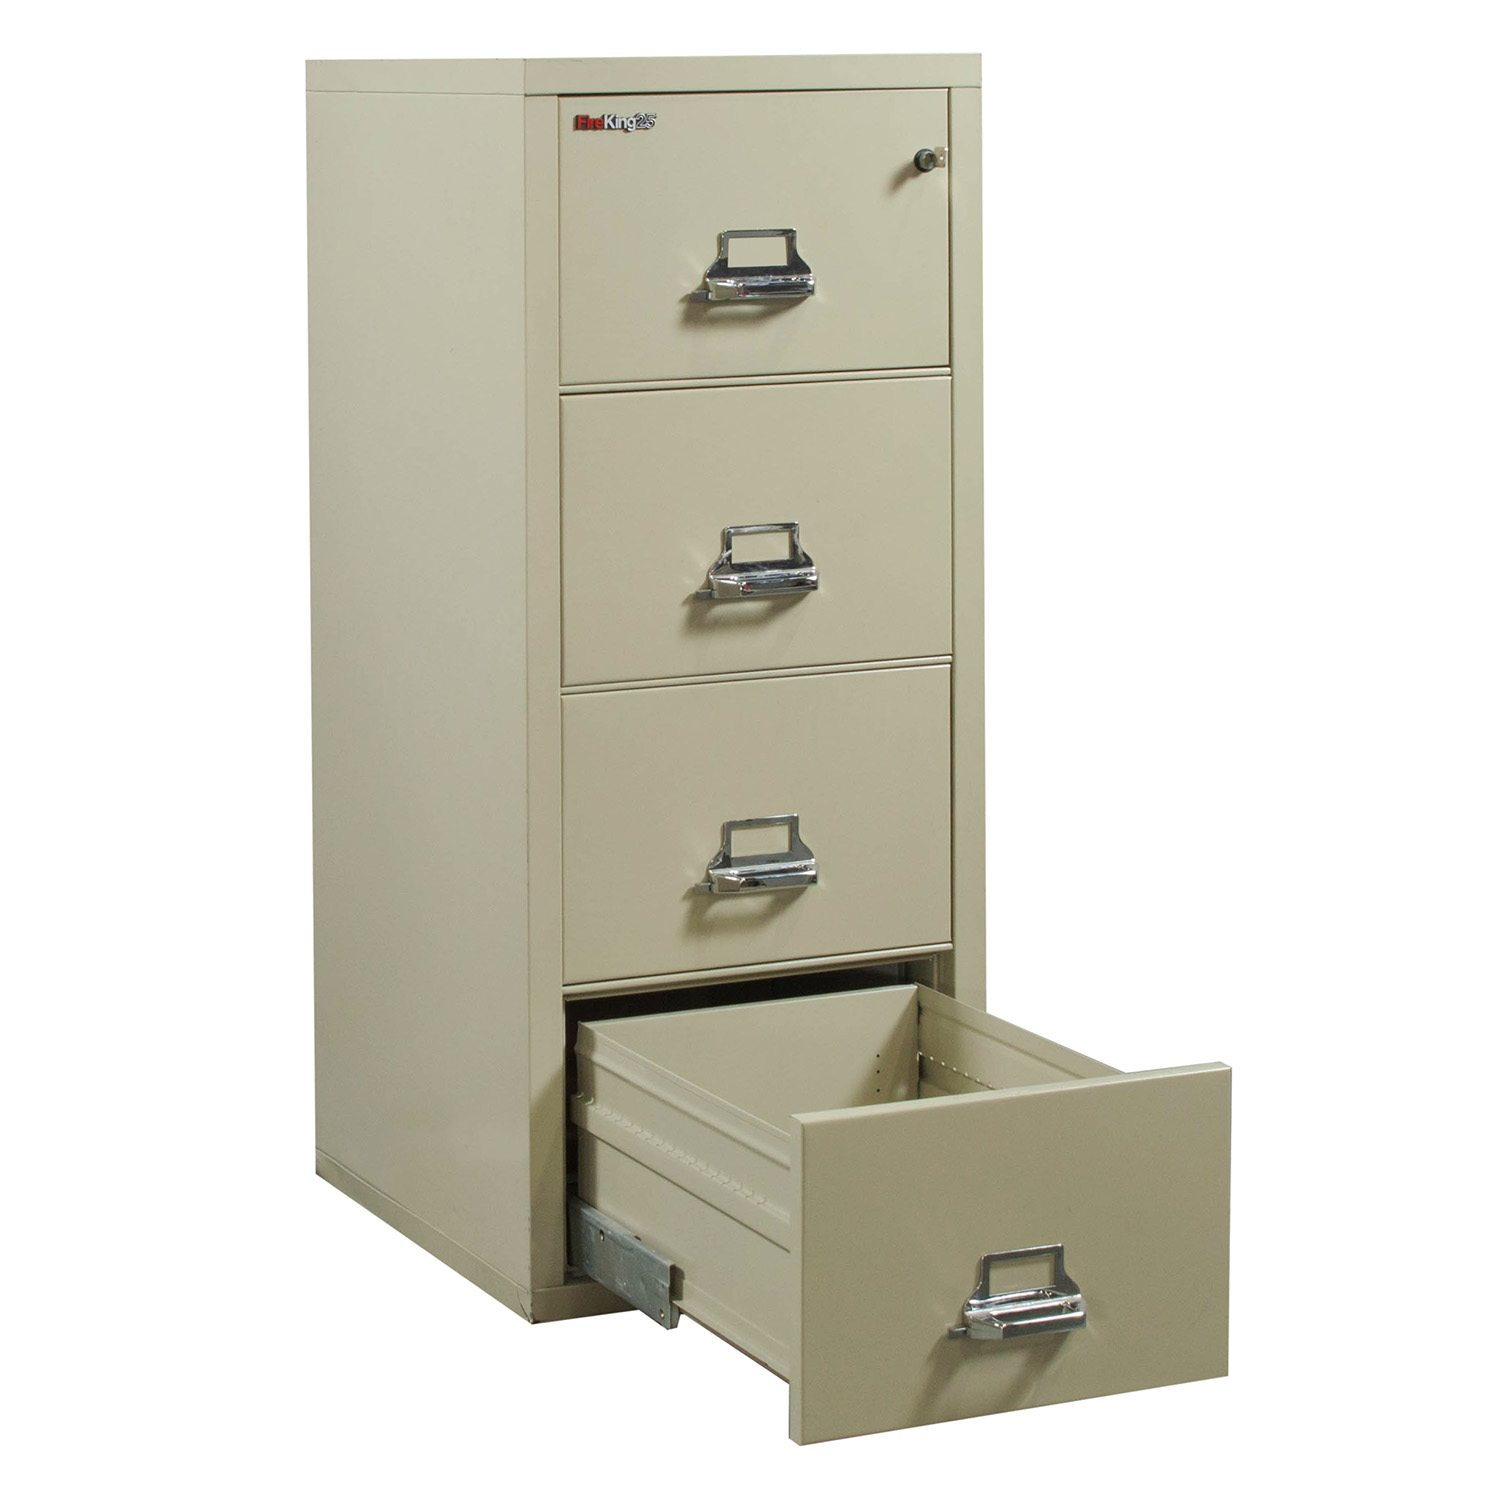 used file cabinets fireking 25 used 4 drawer vertical file cabinet 27784